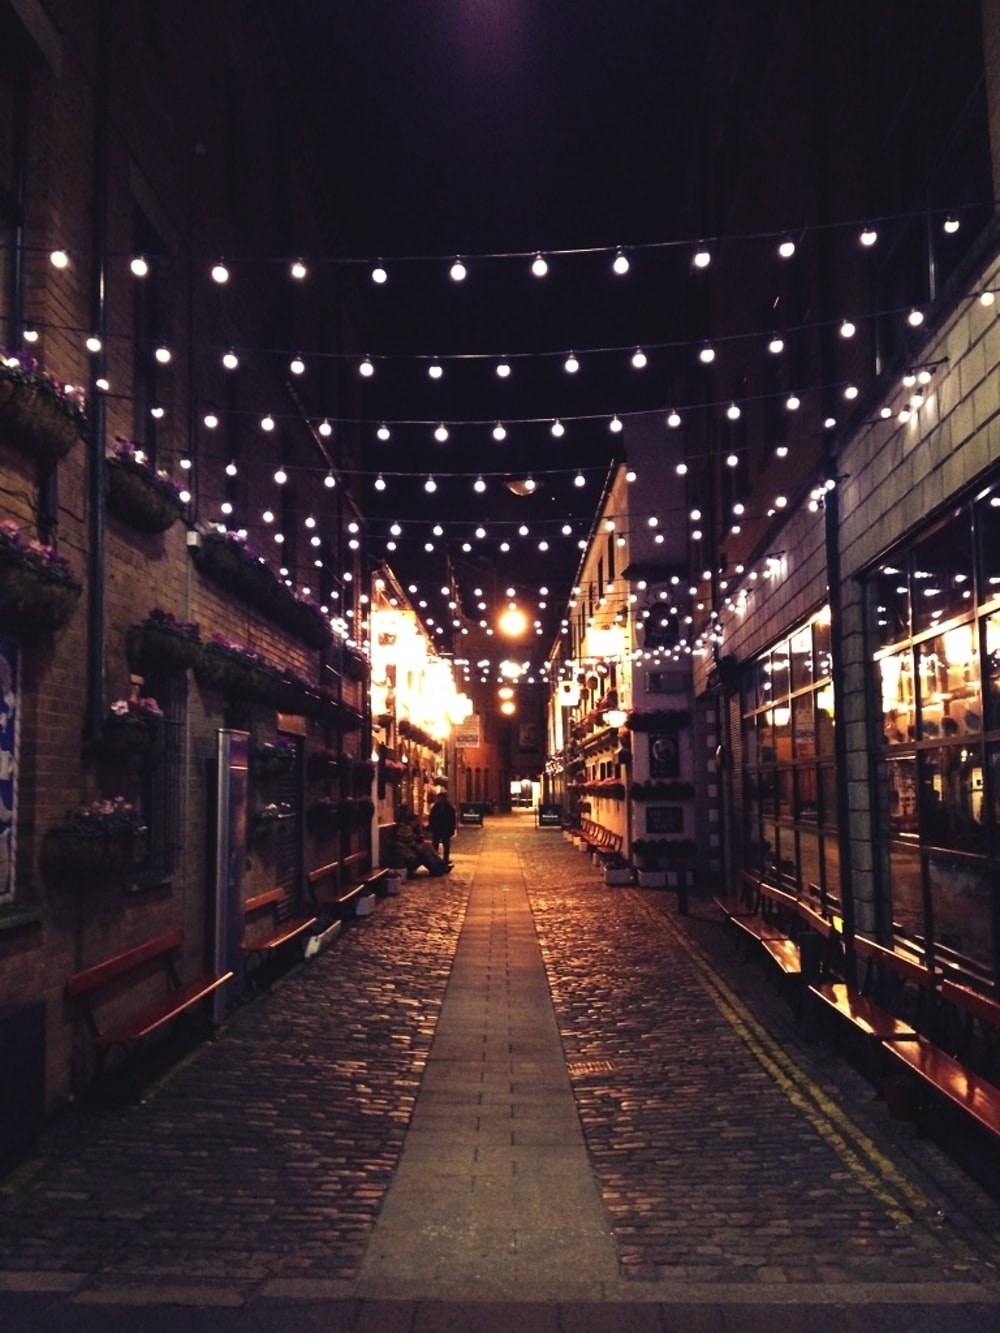 photo of narrow street with light bulbs during night time